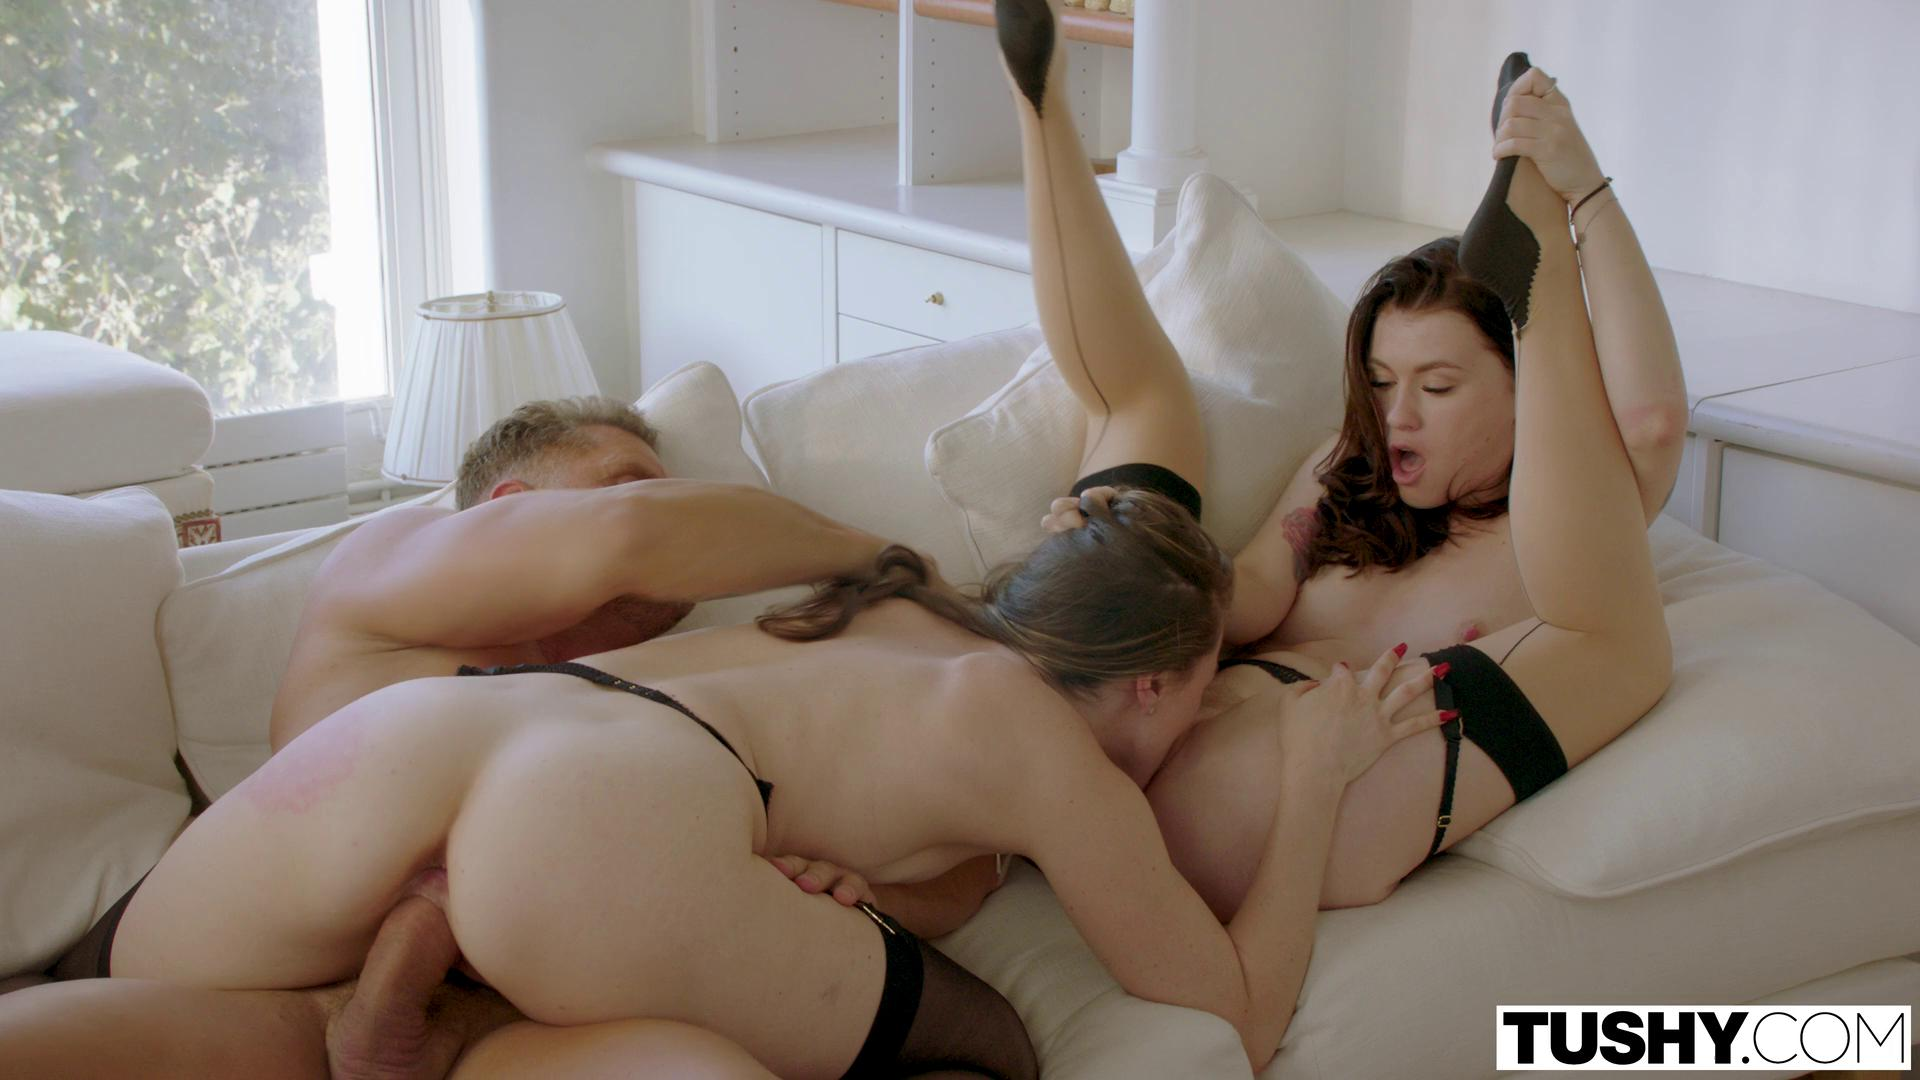 Tushy – Tori Black And Misha Cross